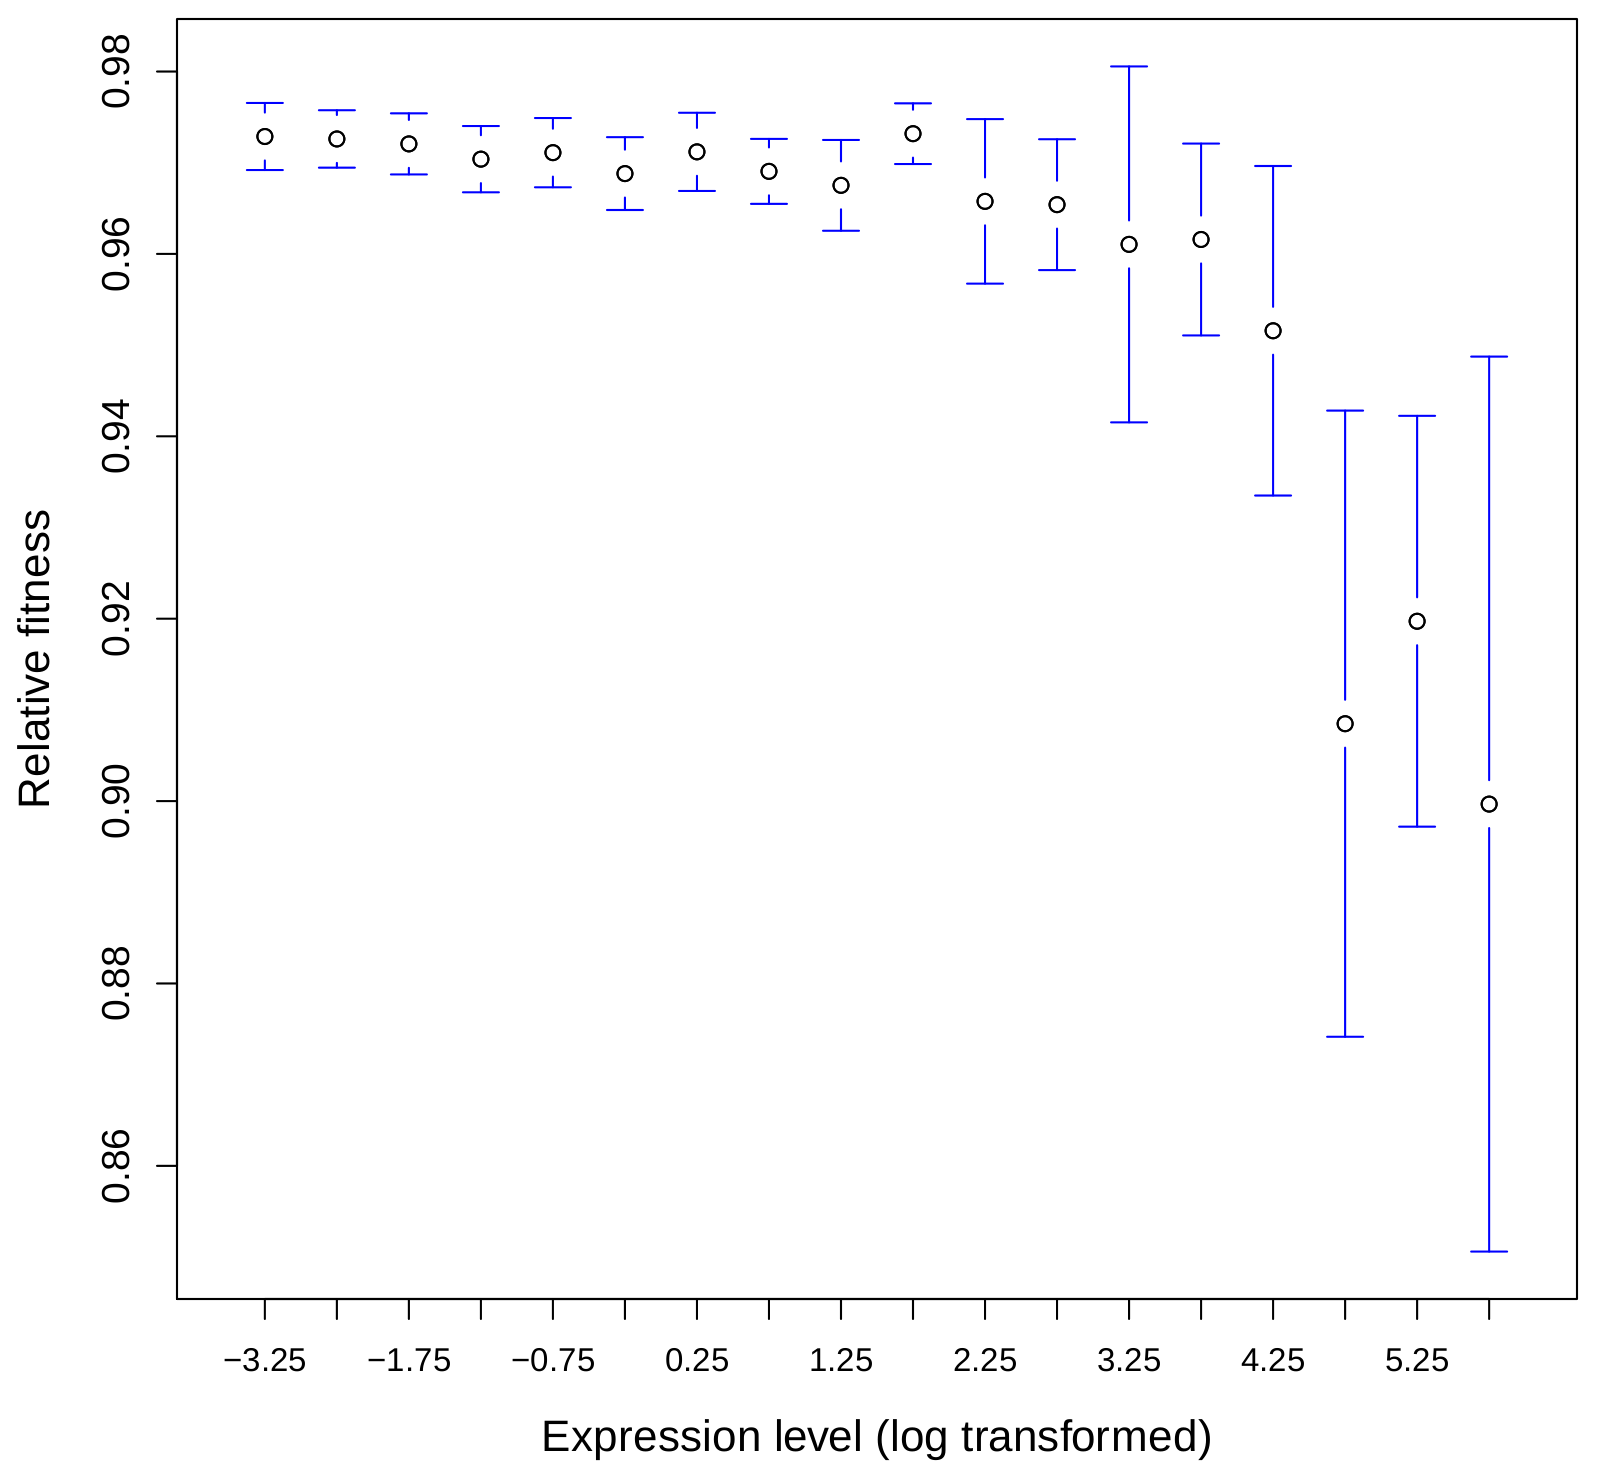 Relationship between gene expression level and loss of fitness associated to heterozygous KO in yeast.